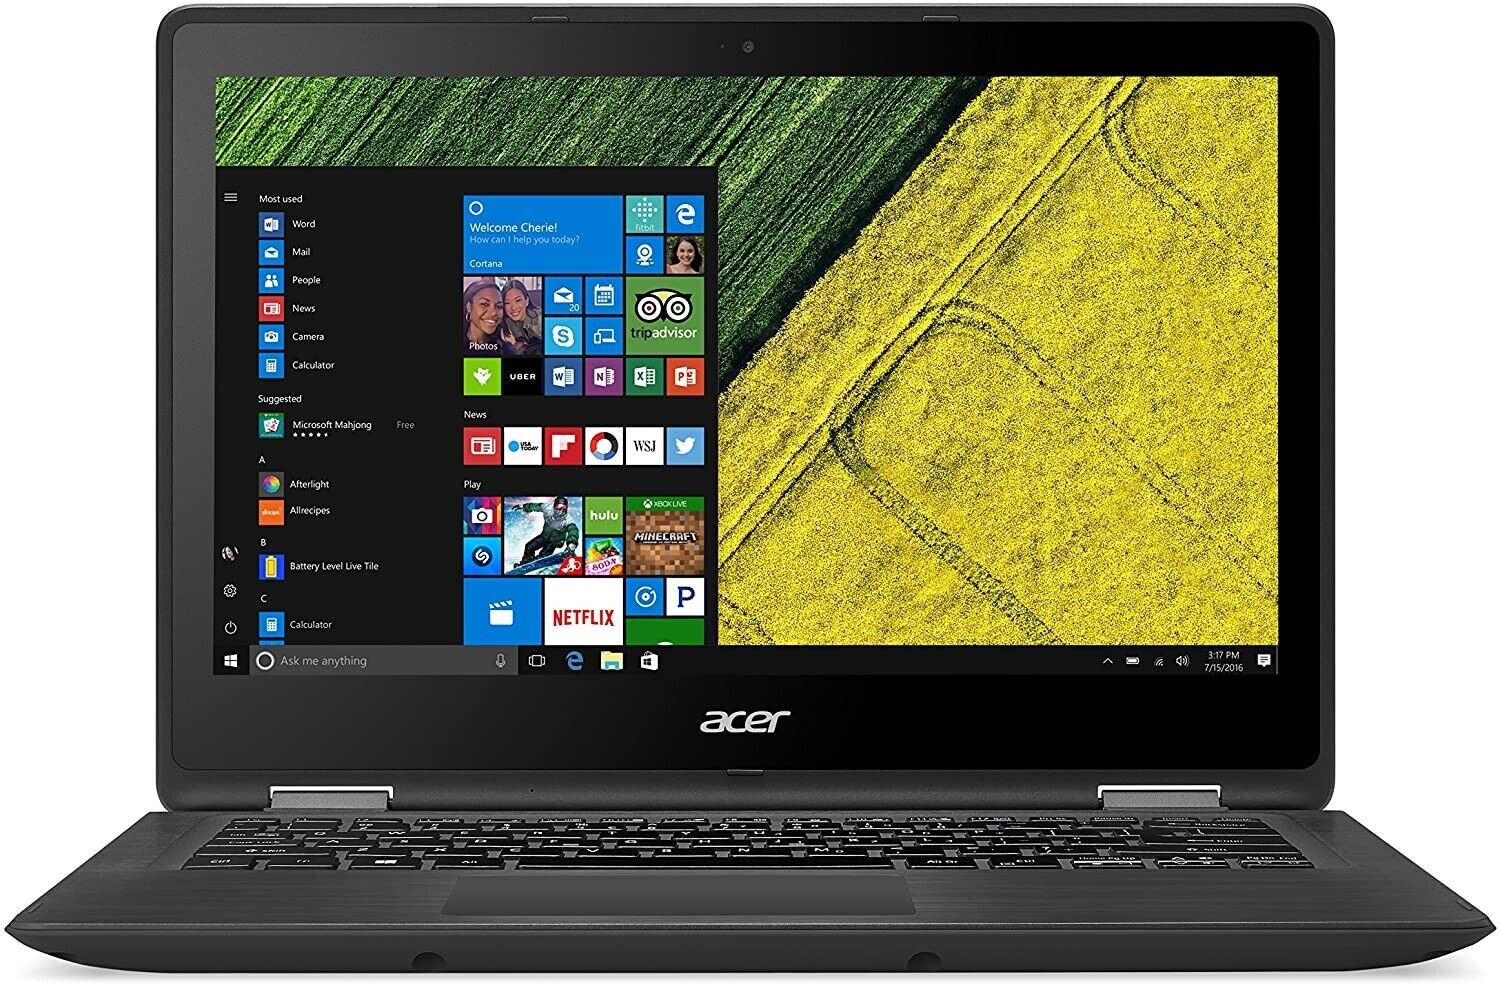 "Laptop Windows - Acer Spin 5, 13.3"" Full HD Touch, Intel Core i5, 8GB DDR4, 128GB SSD, Windows 10"